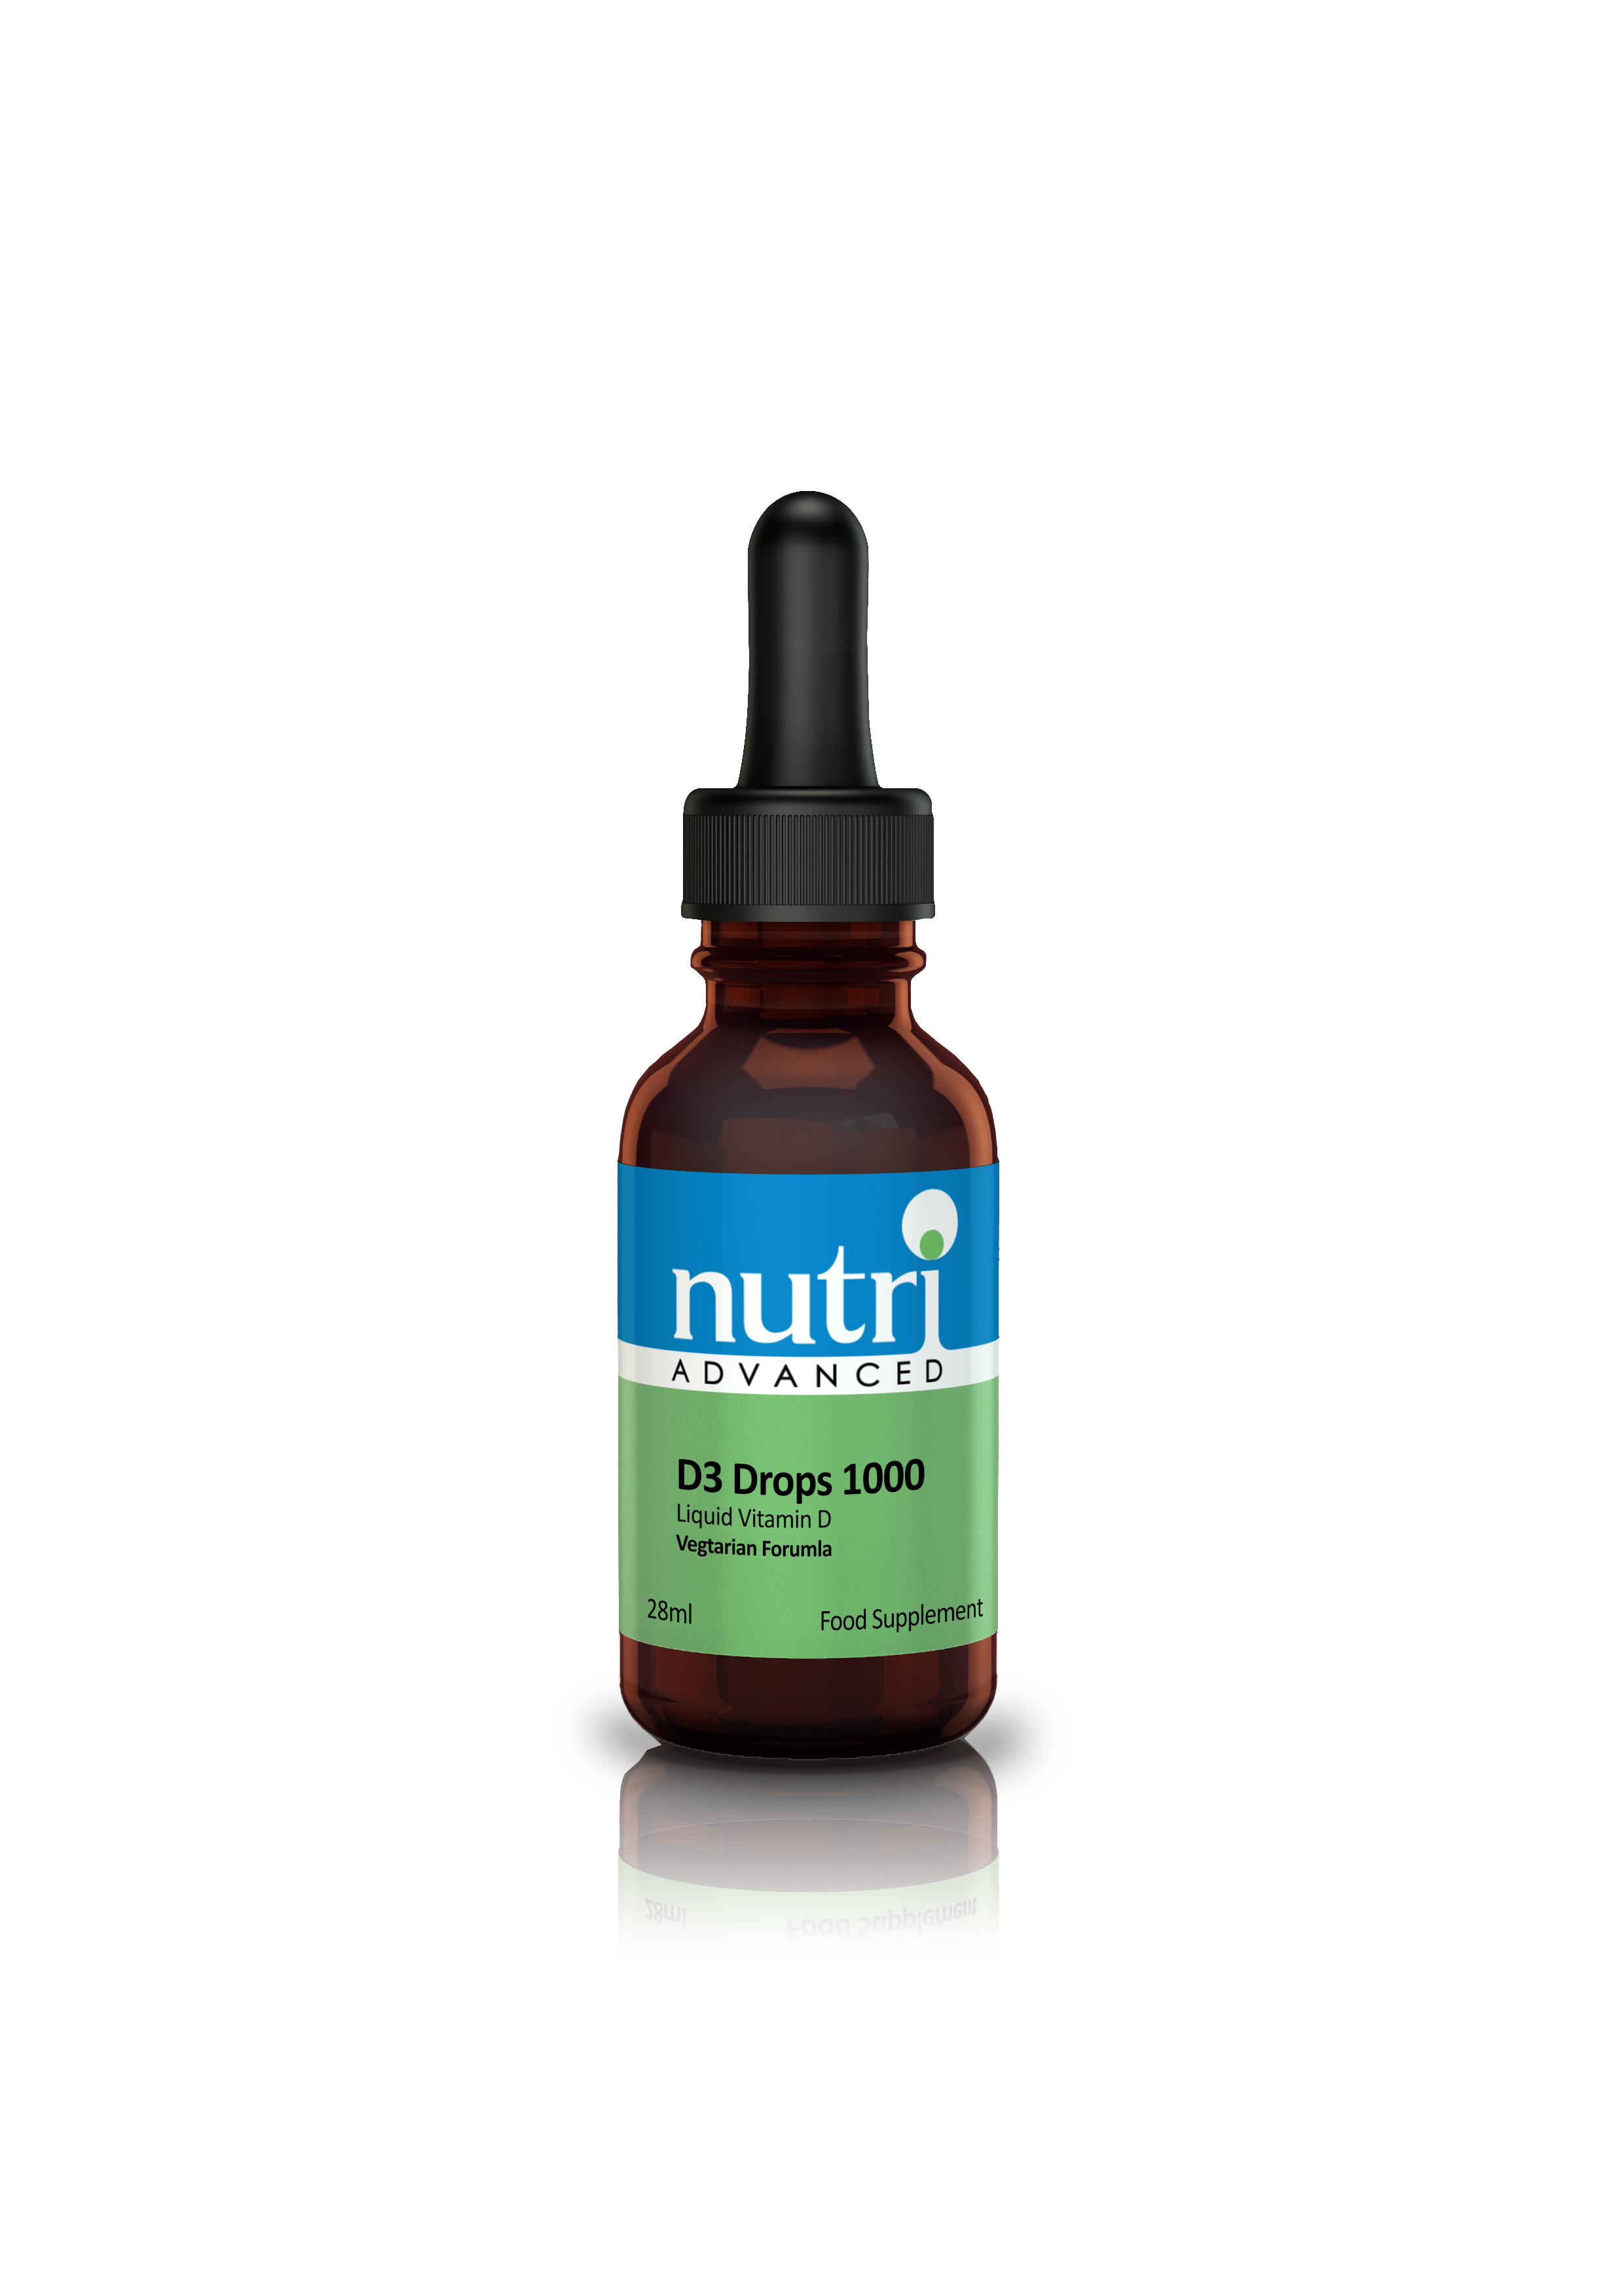 Nutri Advanced D3 Drops 1000 IU - 30ml